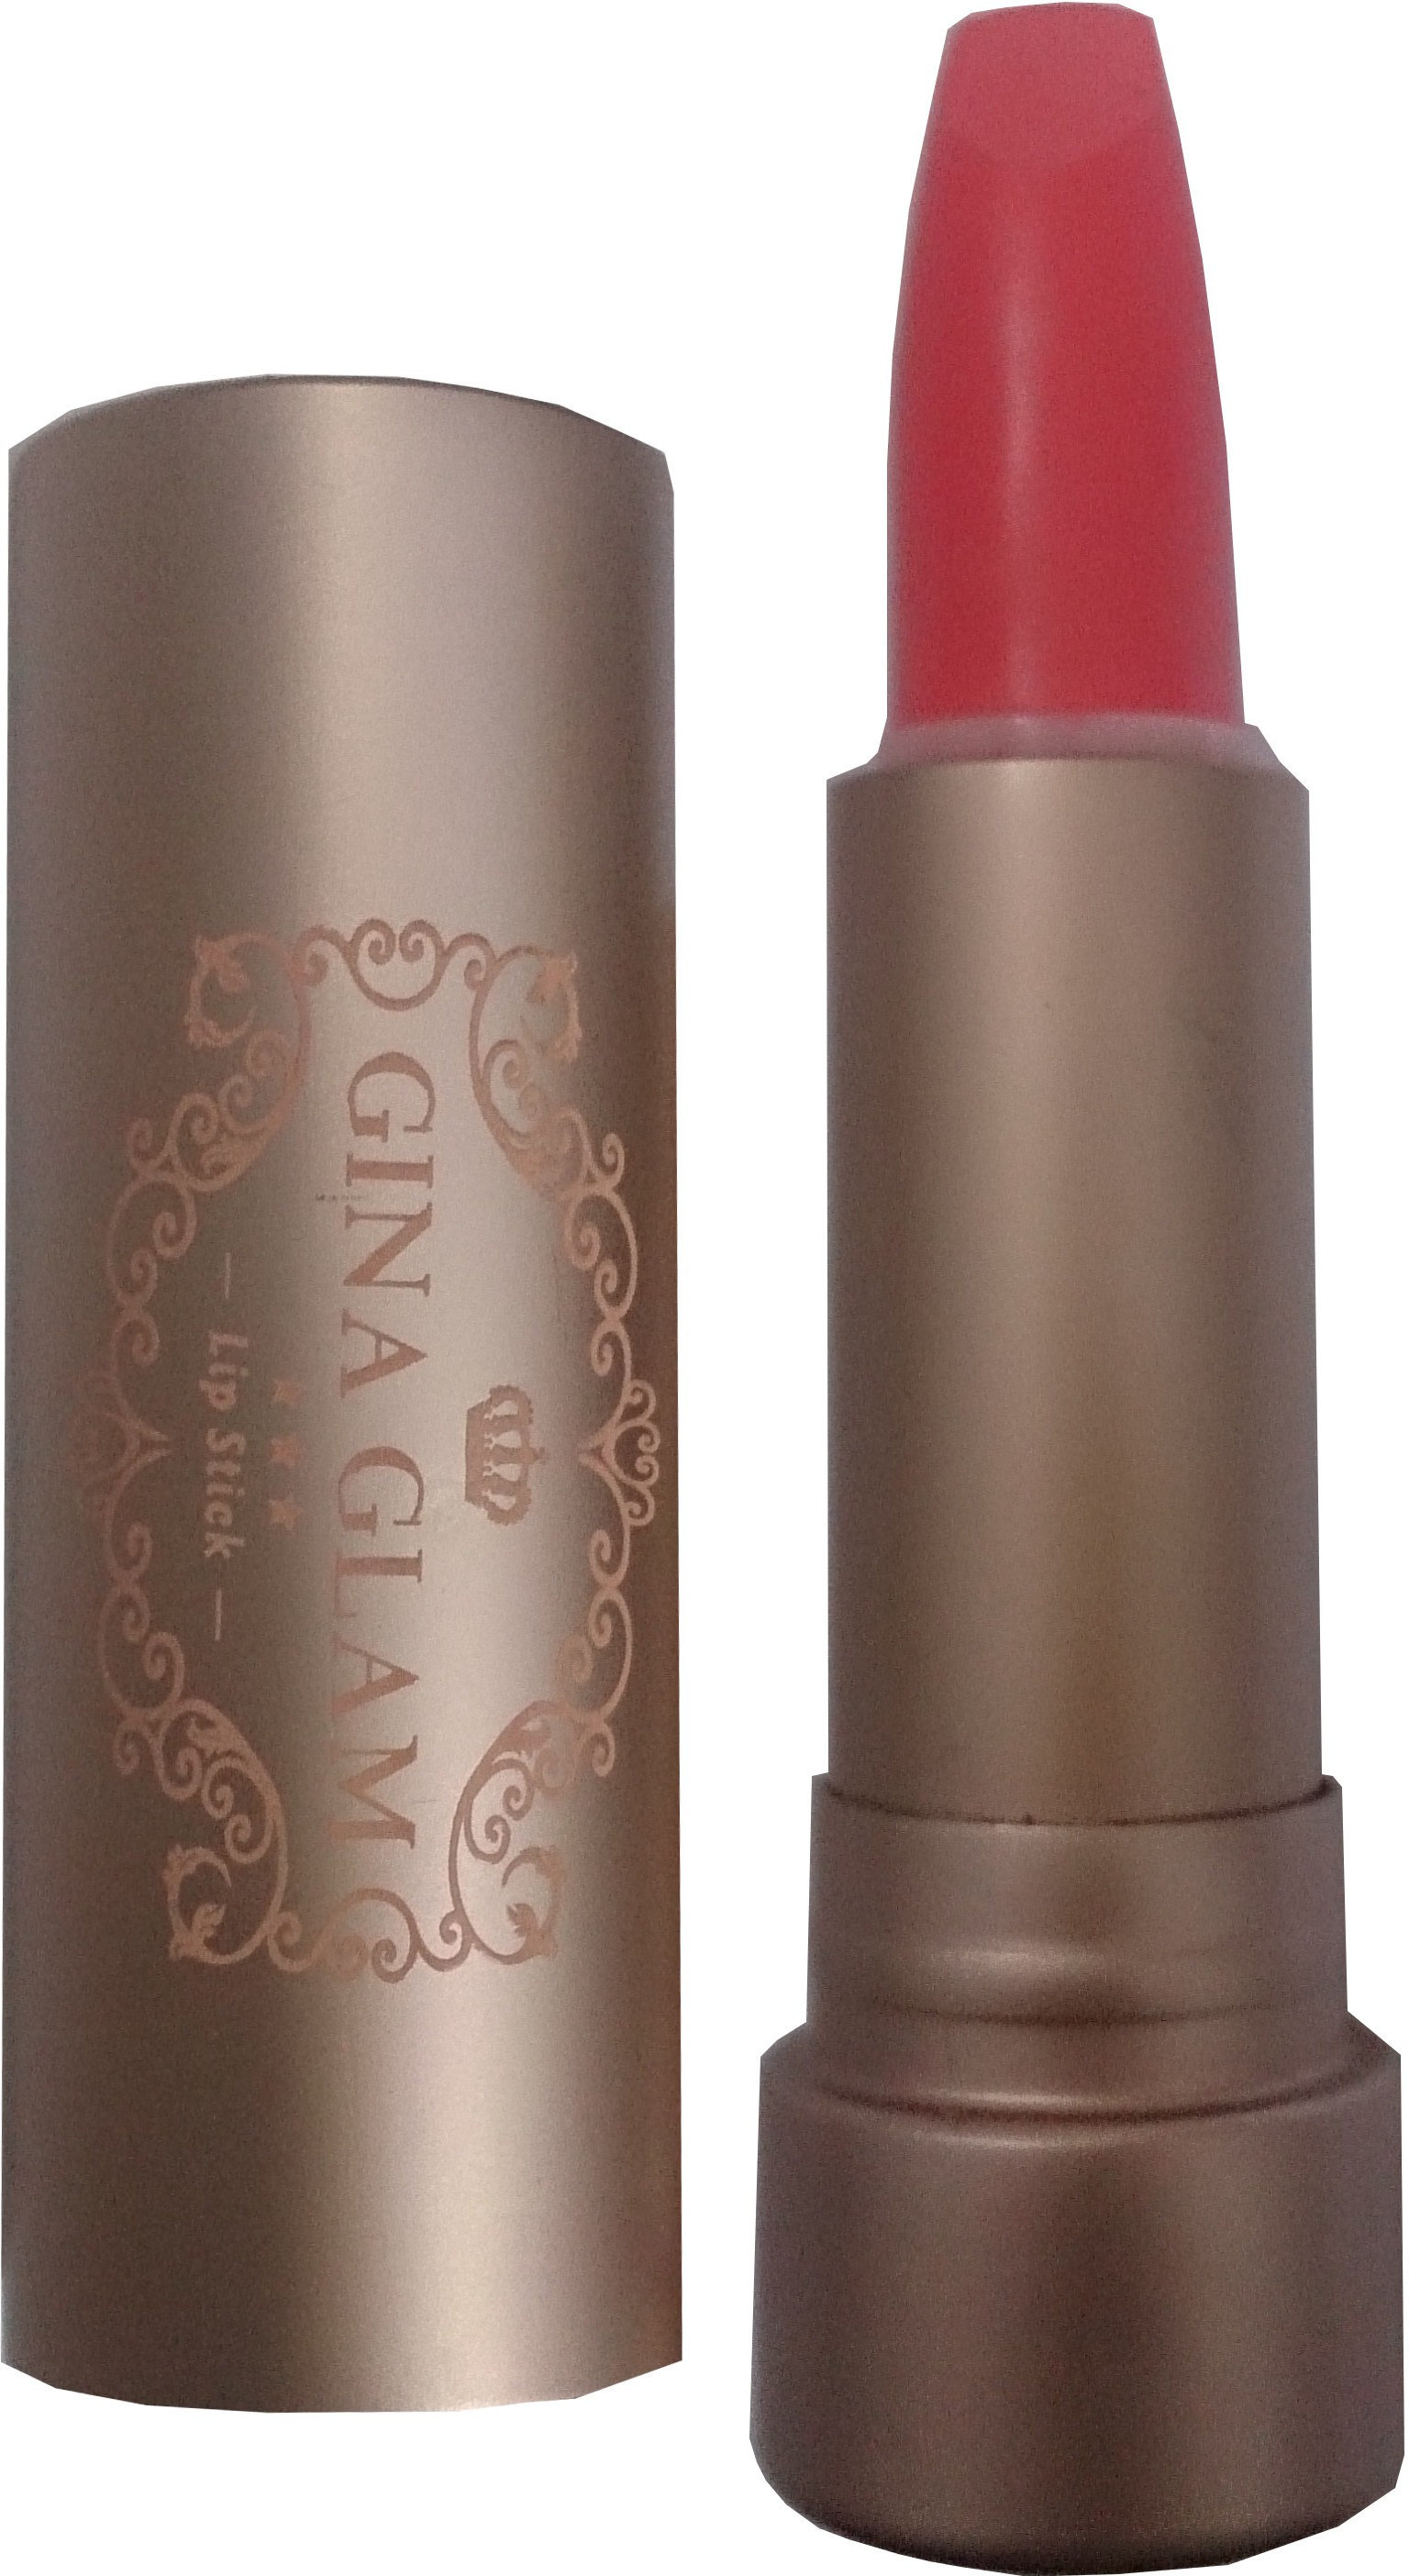 Gina Glam Eternal Beauty(4 g, Hot Light Pink 06)